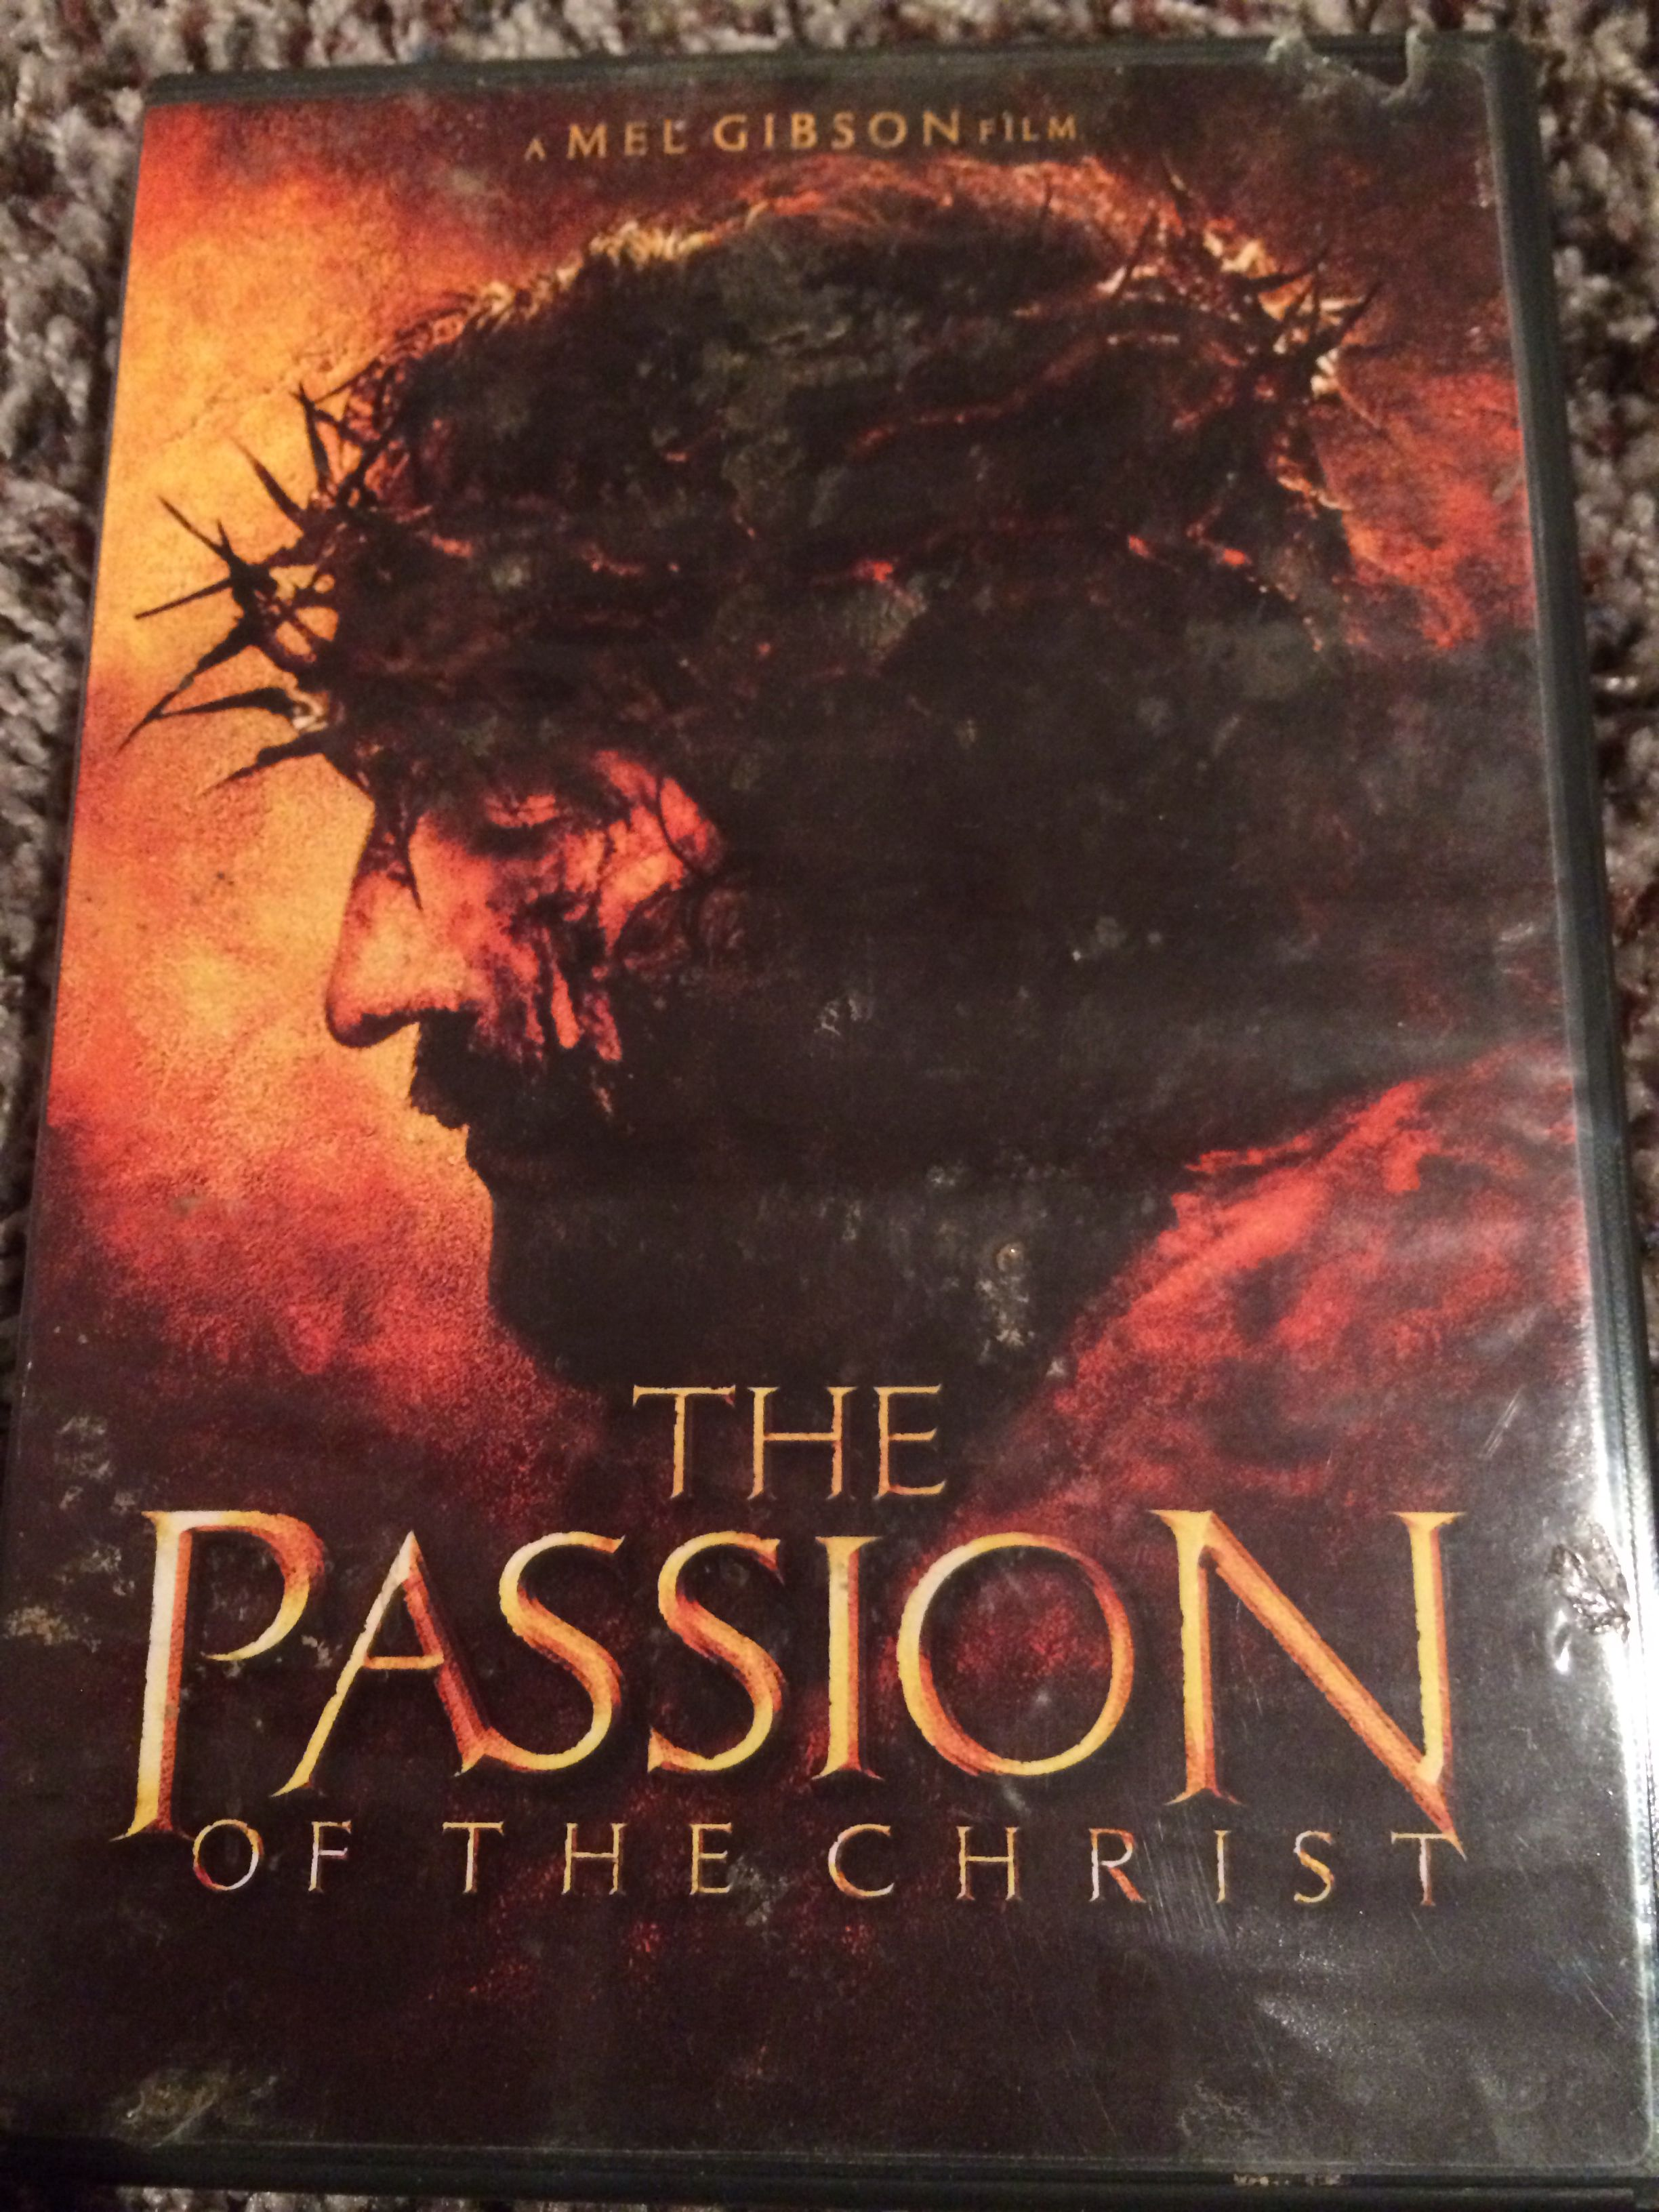 The Passion of Christ Easter movies, Mel gibson, See movie